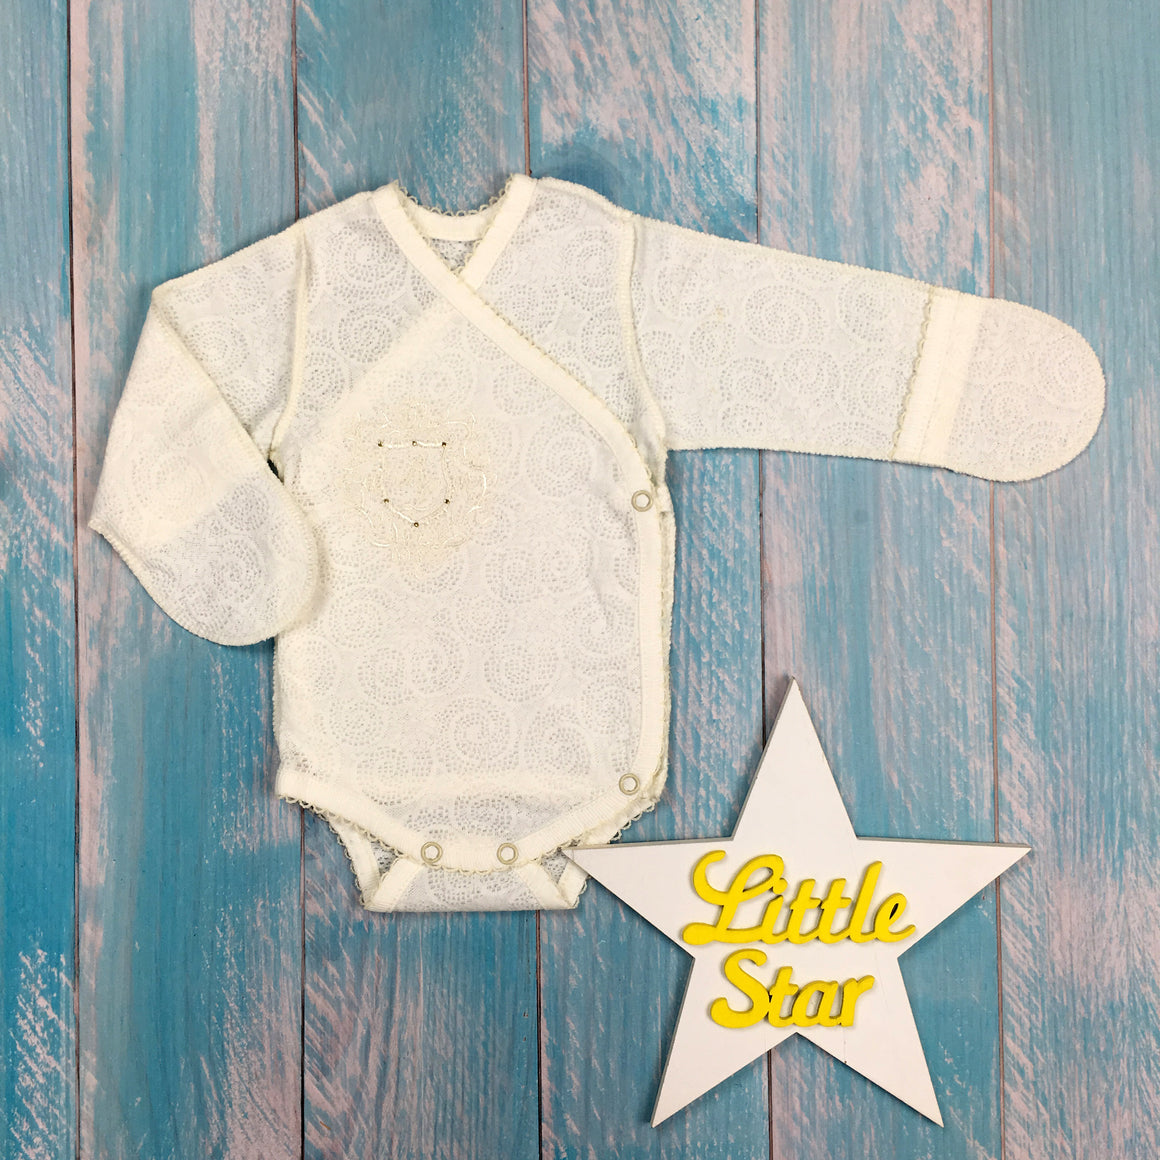 Inside-out romper suit